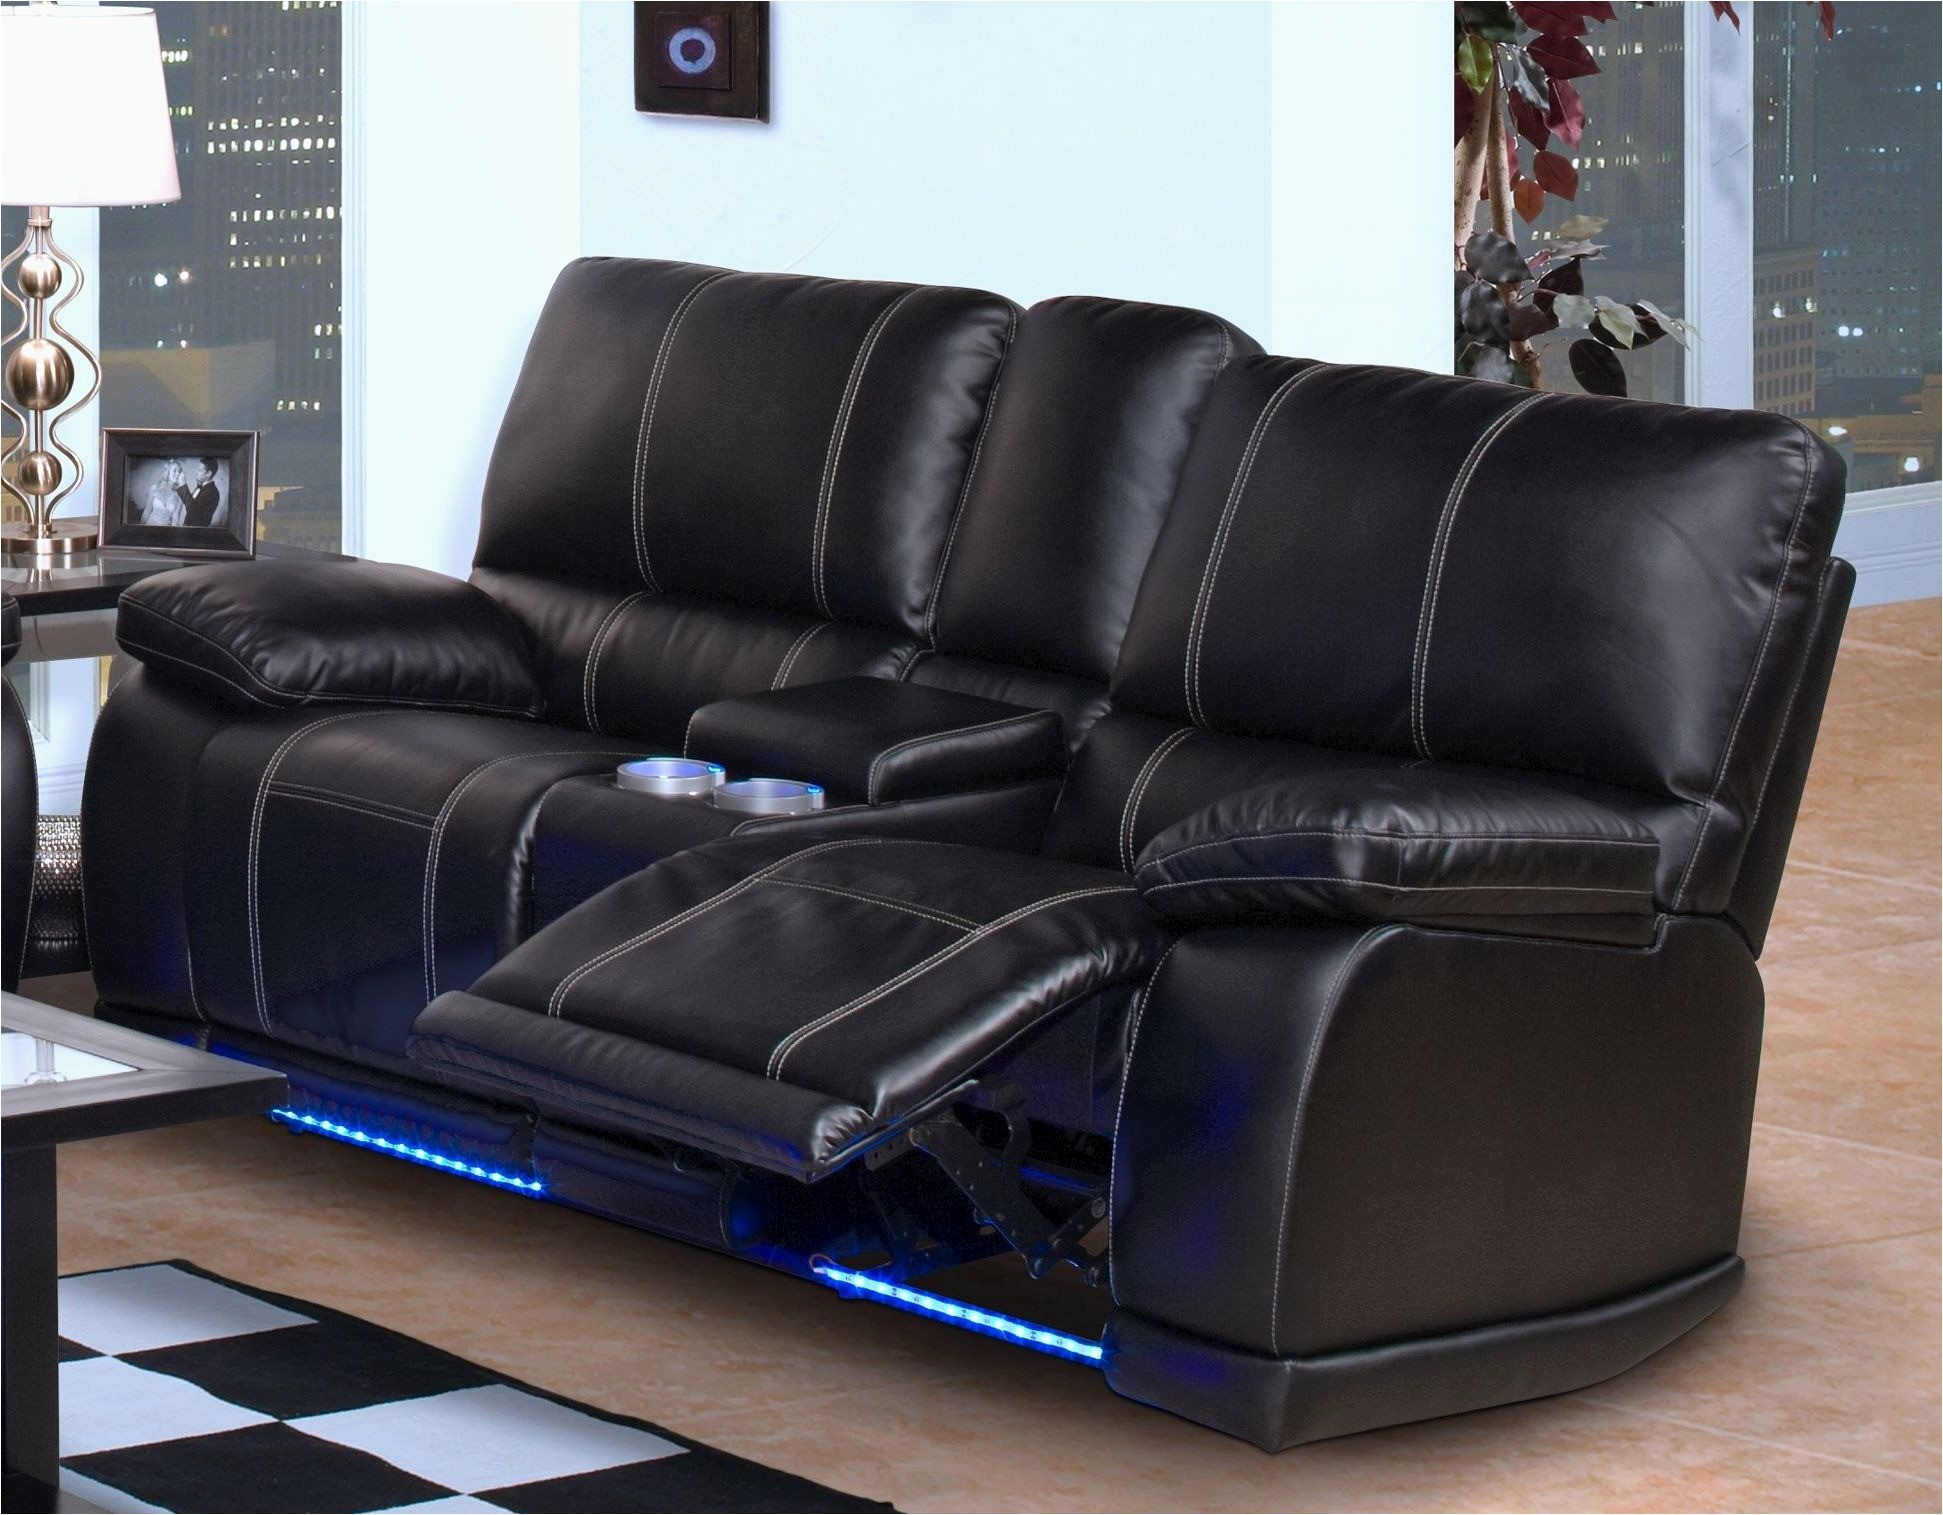 Leather Sectional Recliner Sofa With Cup Holders